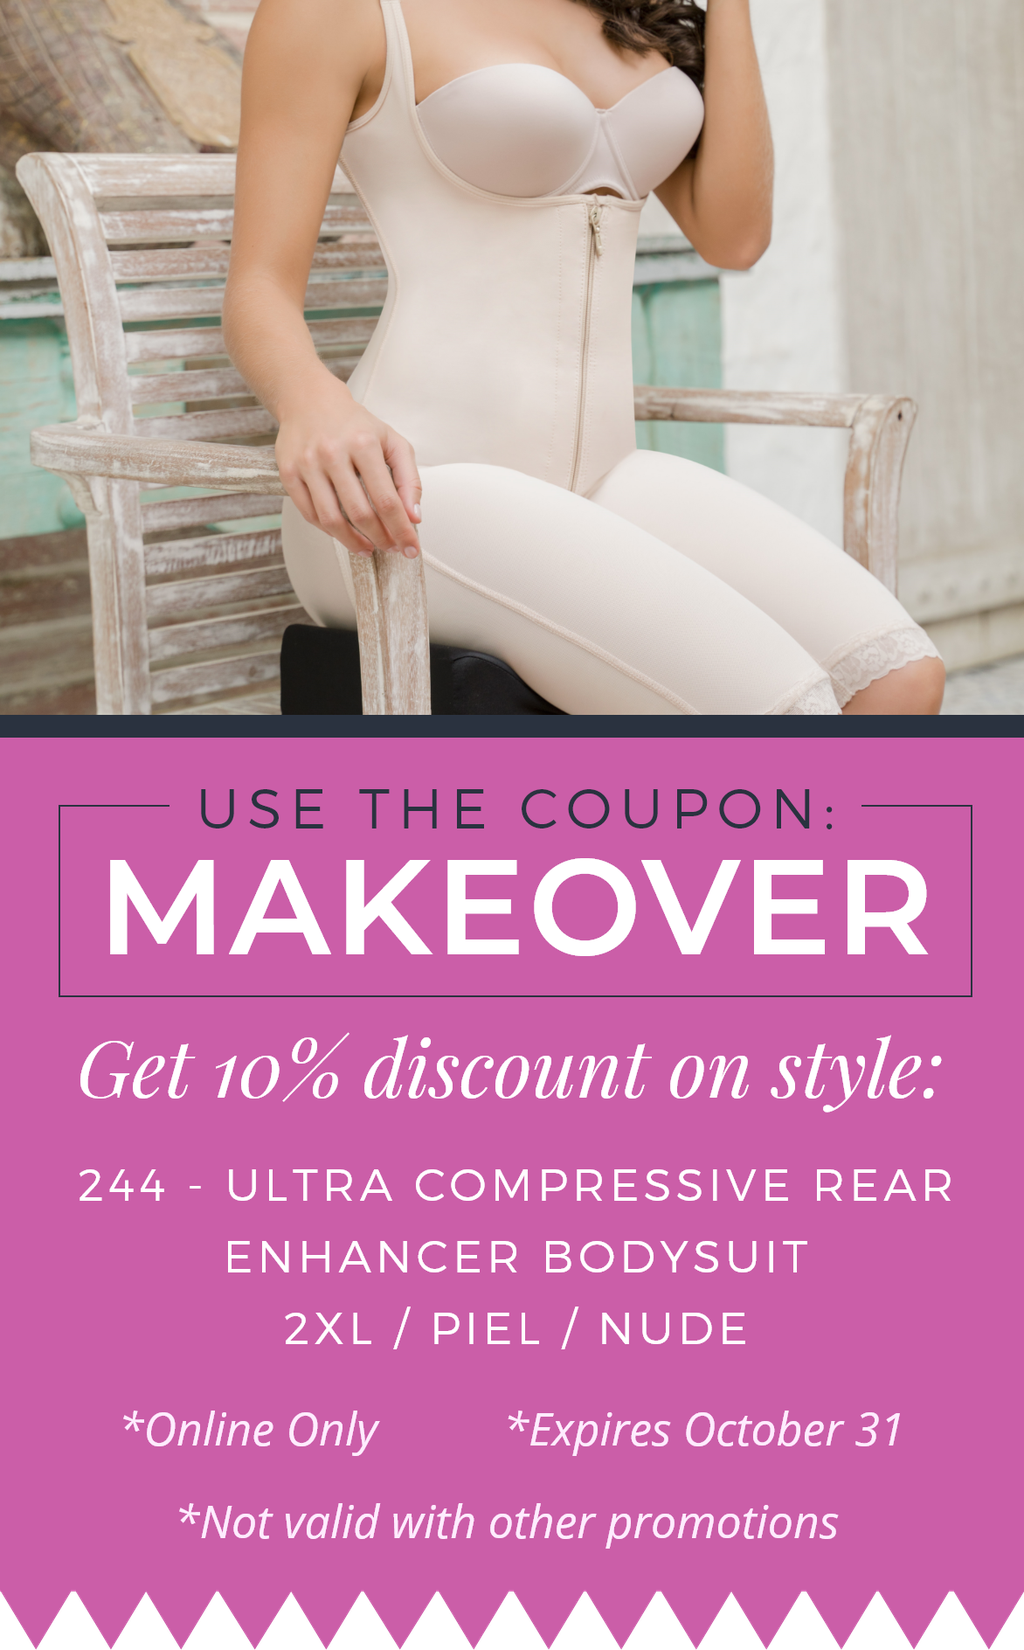 full body shaper on sale online only coupon, shapewear sale online only